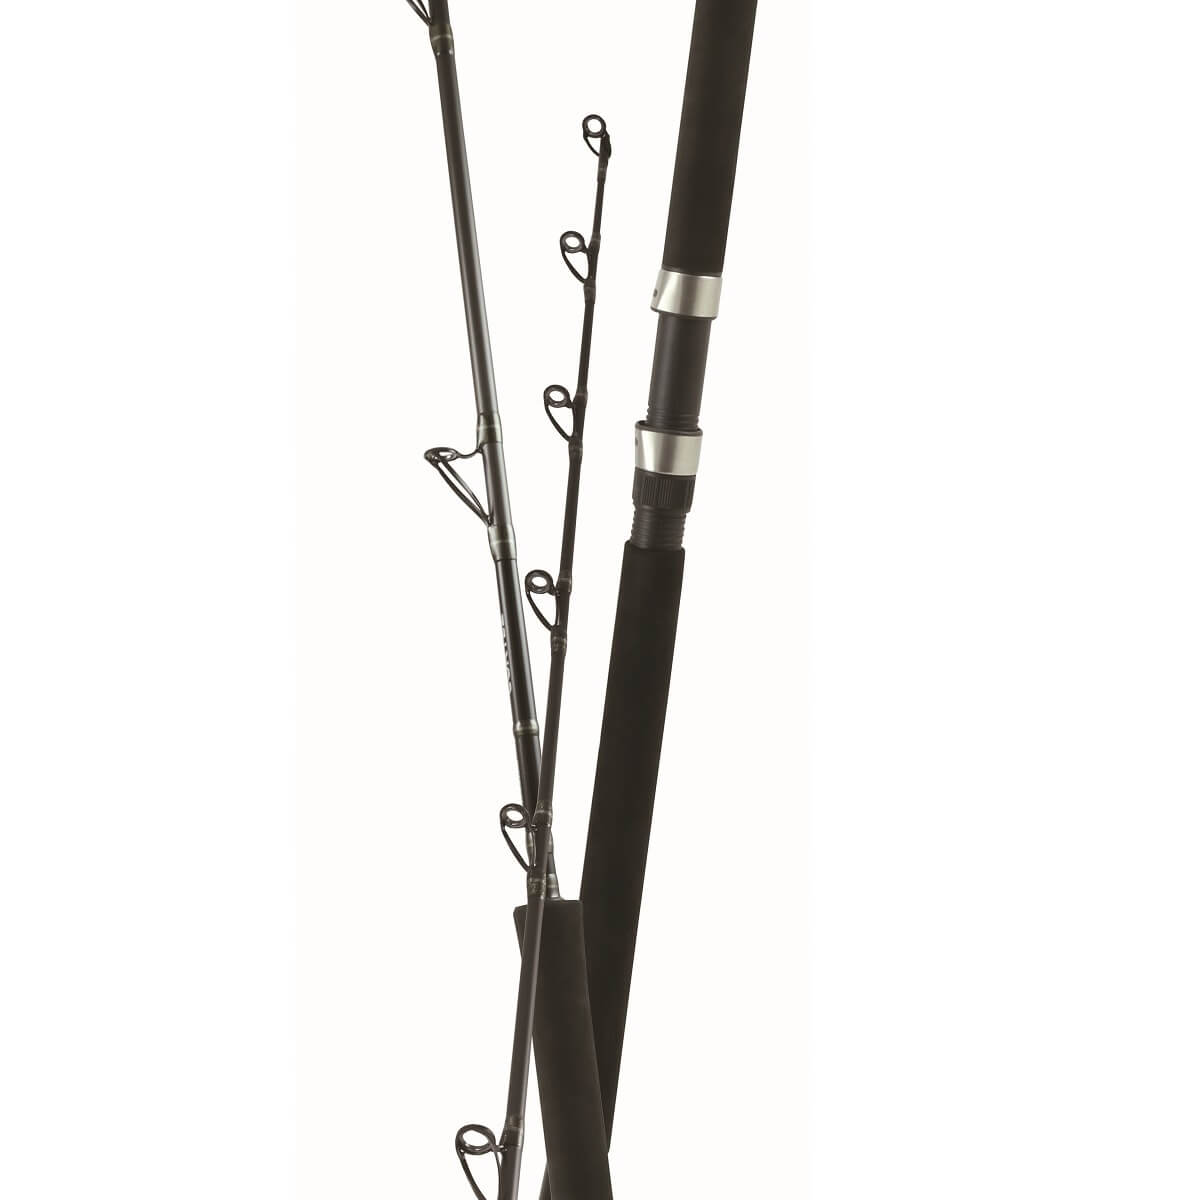 Cortez HD / SBK Rod - Okuma Cortez HD / SBK Rod-Cortez HD rods feature durable e-glass blank construction-Cortez SBK rods feature responsive and durable 24-ton carbon blank constructional on all Modelos